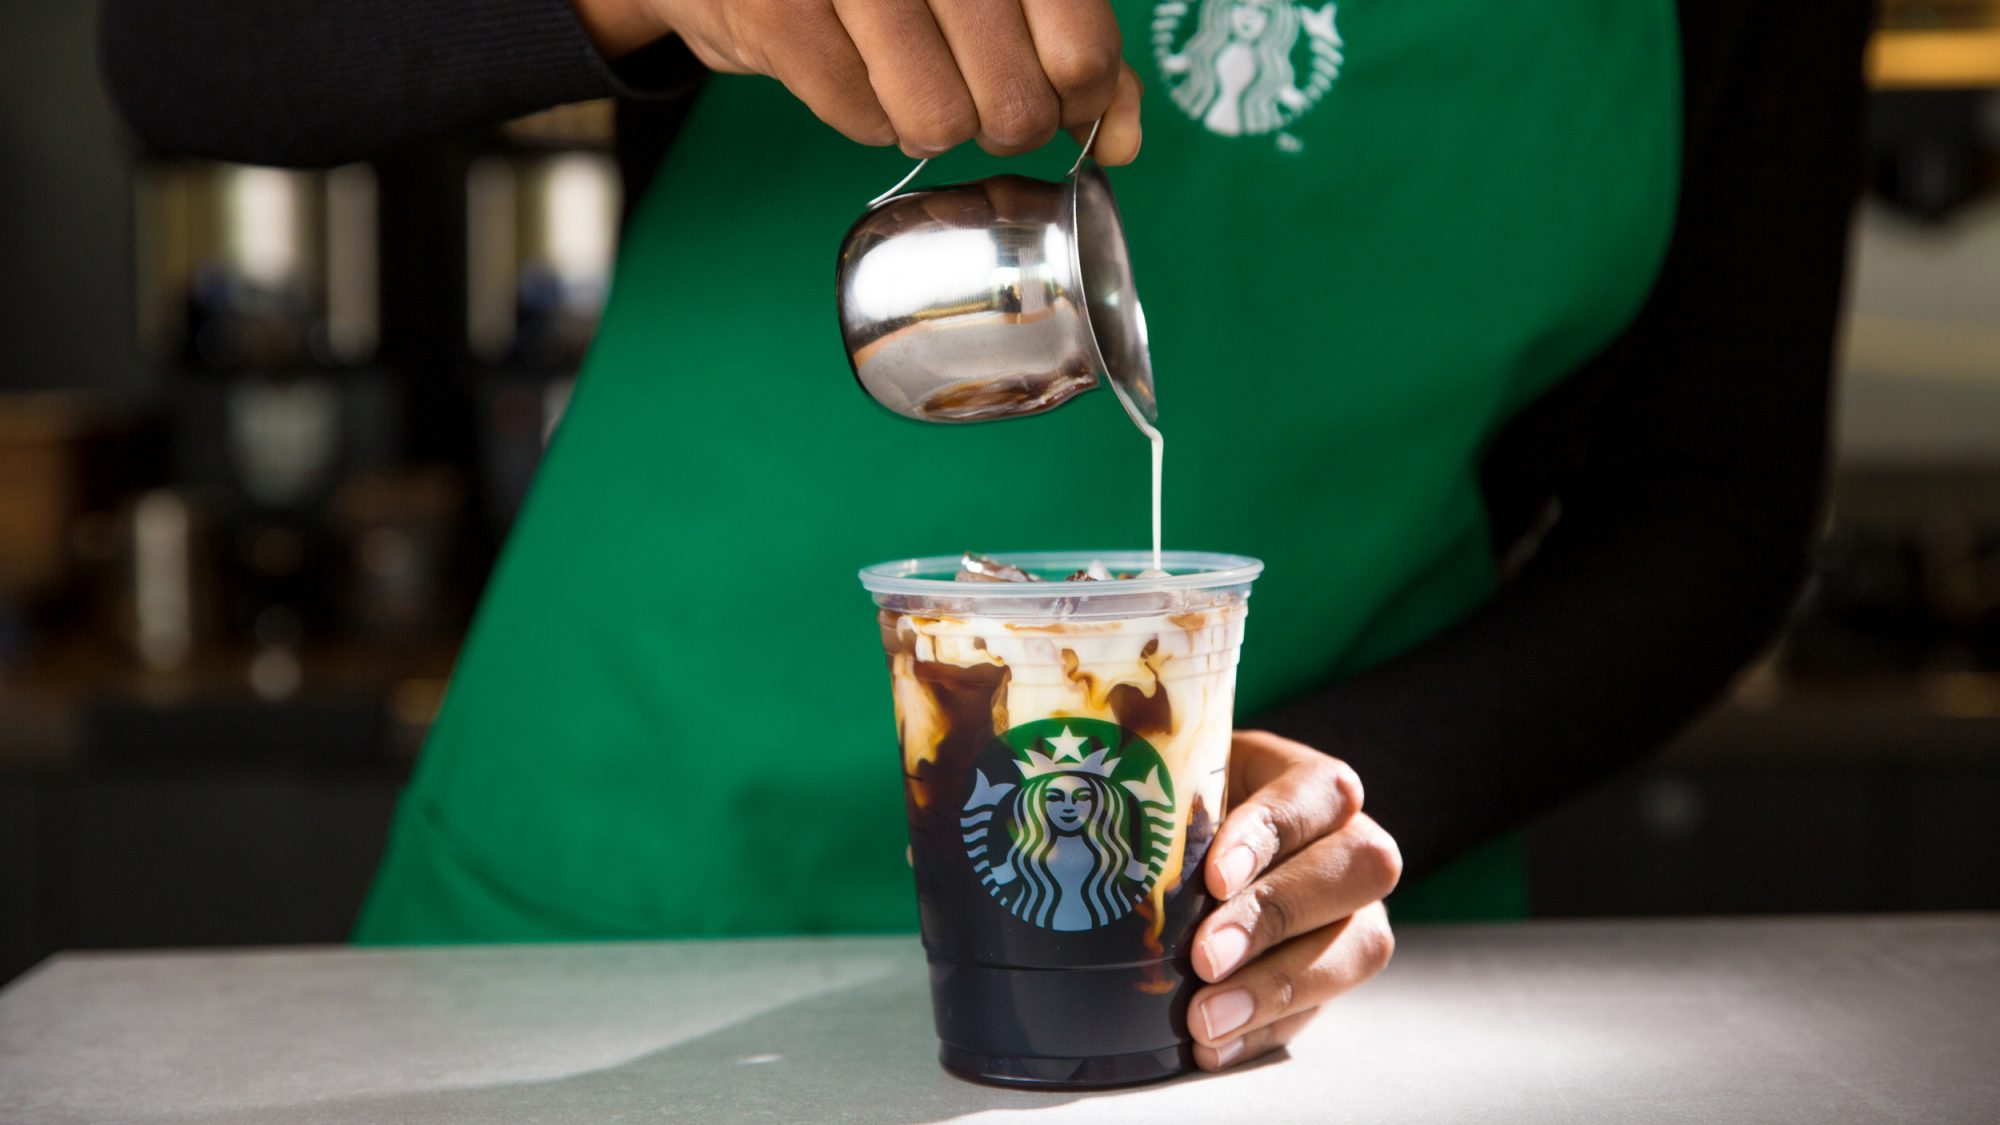 nitro-cold-brew-coffee-starbucks-2-FT-BLOG0516.jpg